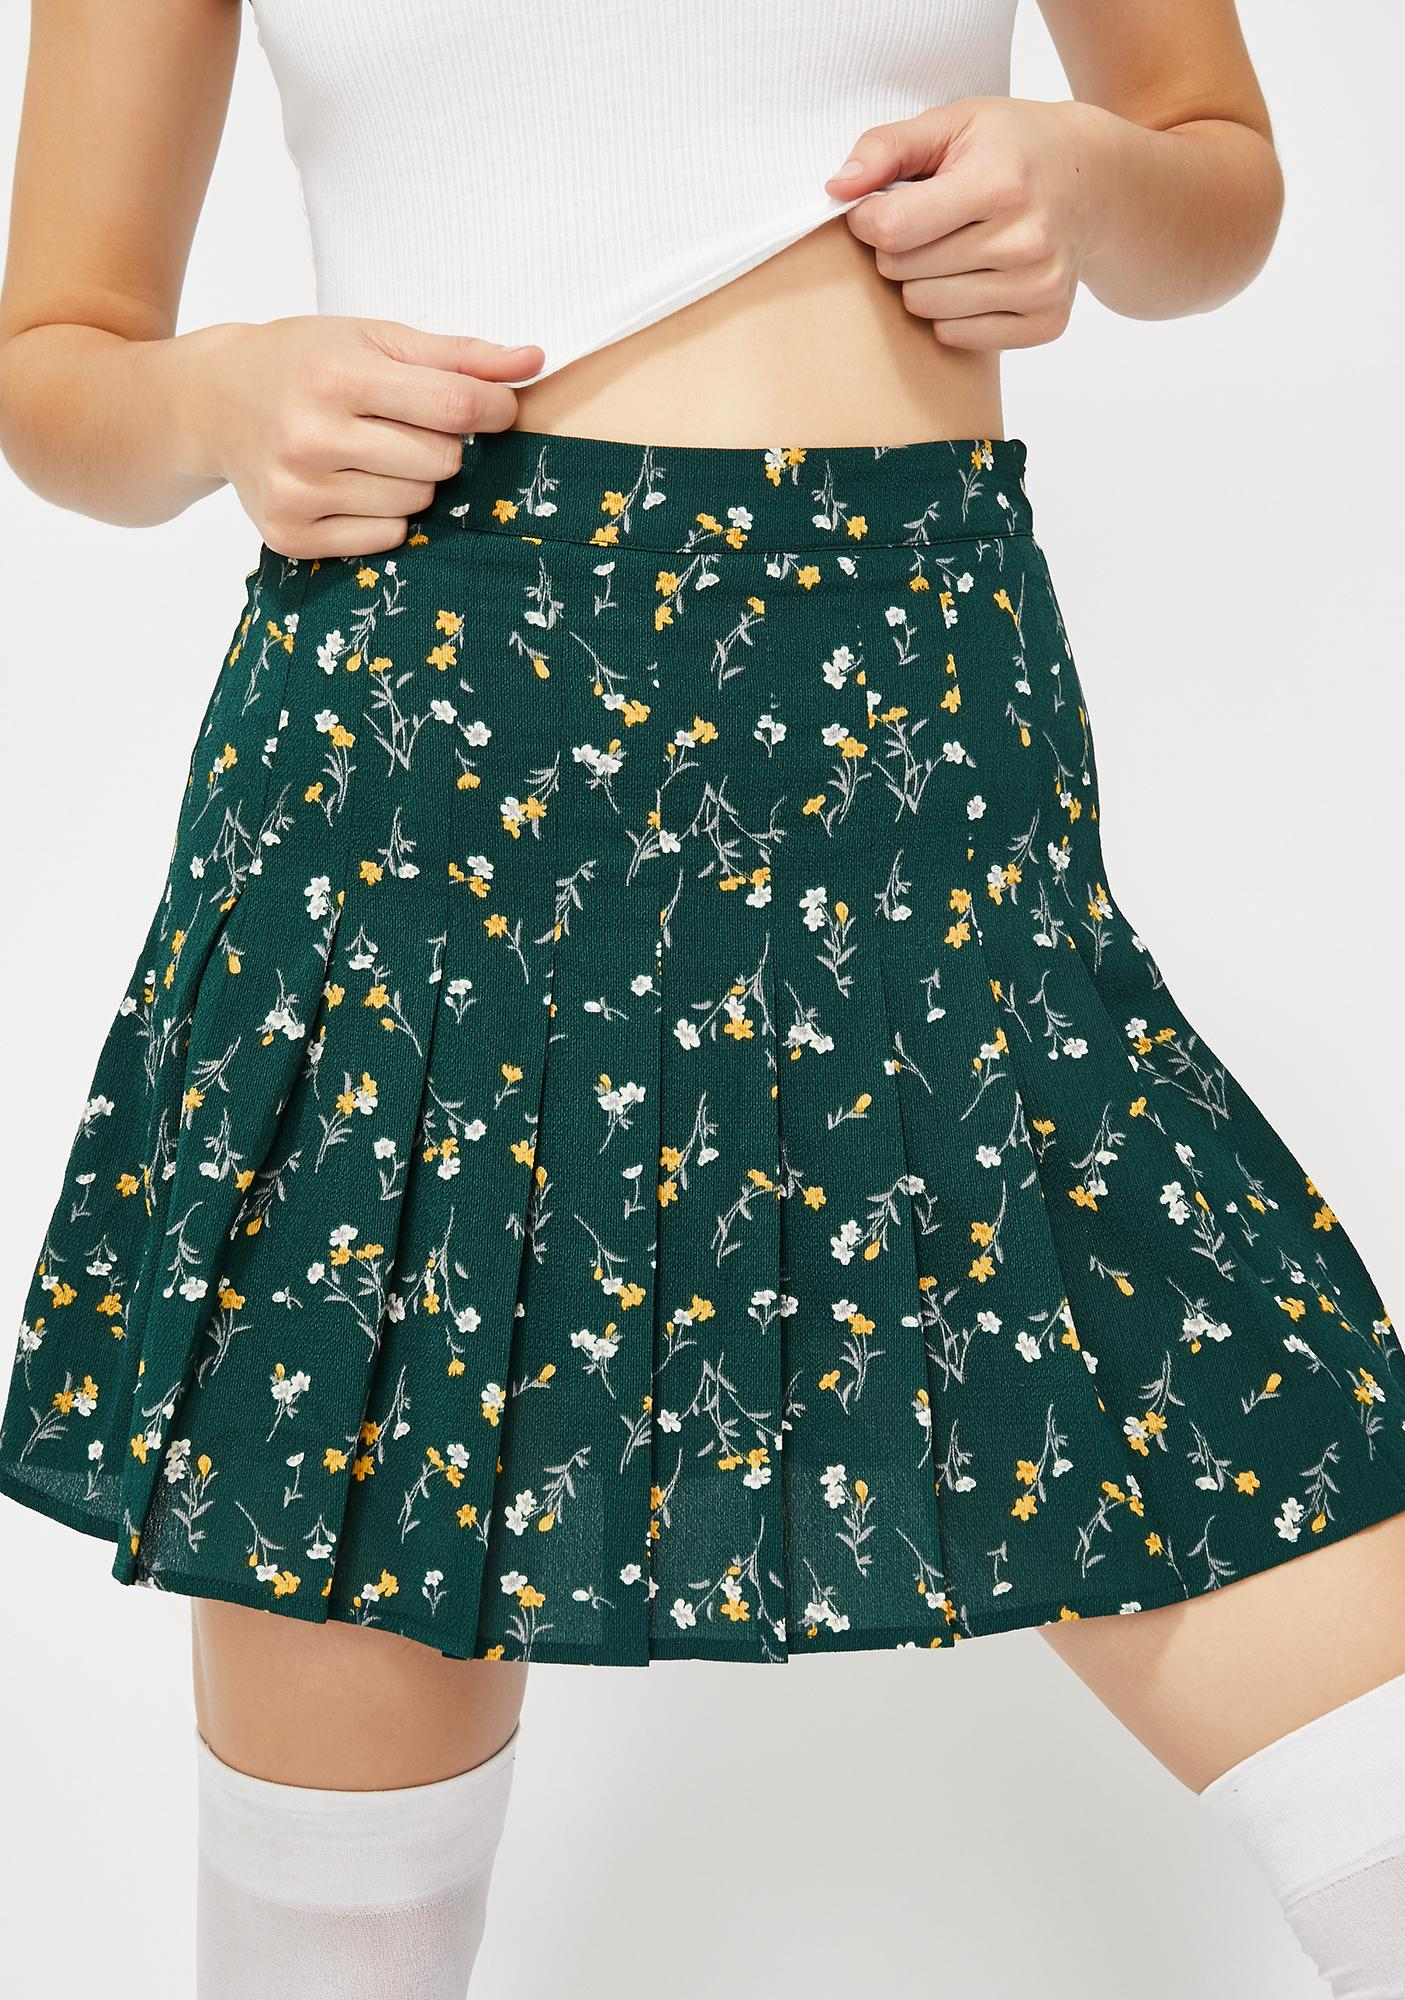 7f26877fc8 Green Pleated Floral Mini Skirt | Dolls Kill